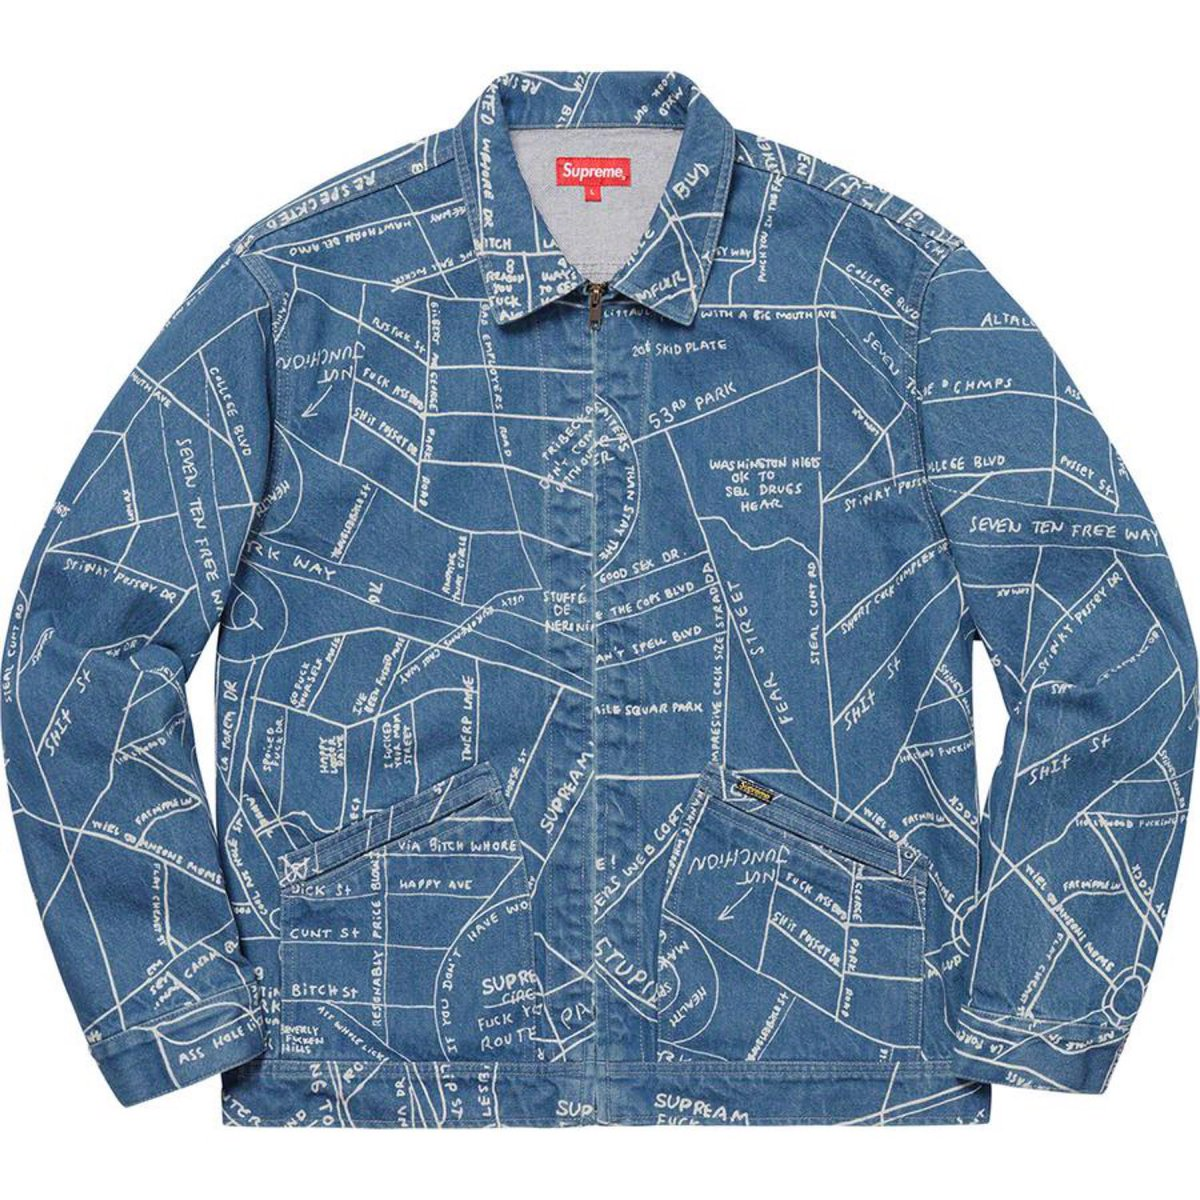 #Supreme #Gonz map blue Size medium for sale #SaturdayMorning #hypebeast #follobackforfolloback #Caturday #FathersDay  #AMJoy <br>http://pic.twitter.com/IV1f6roh2w